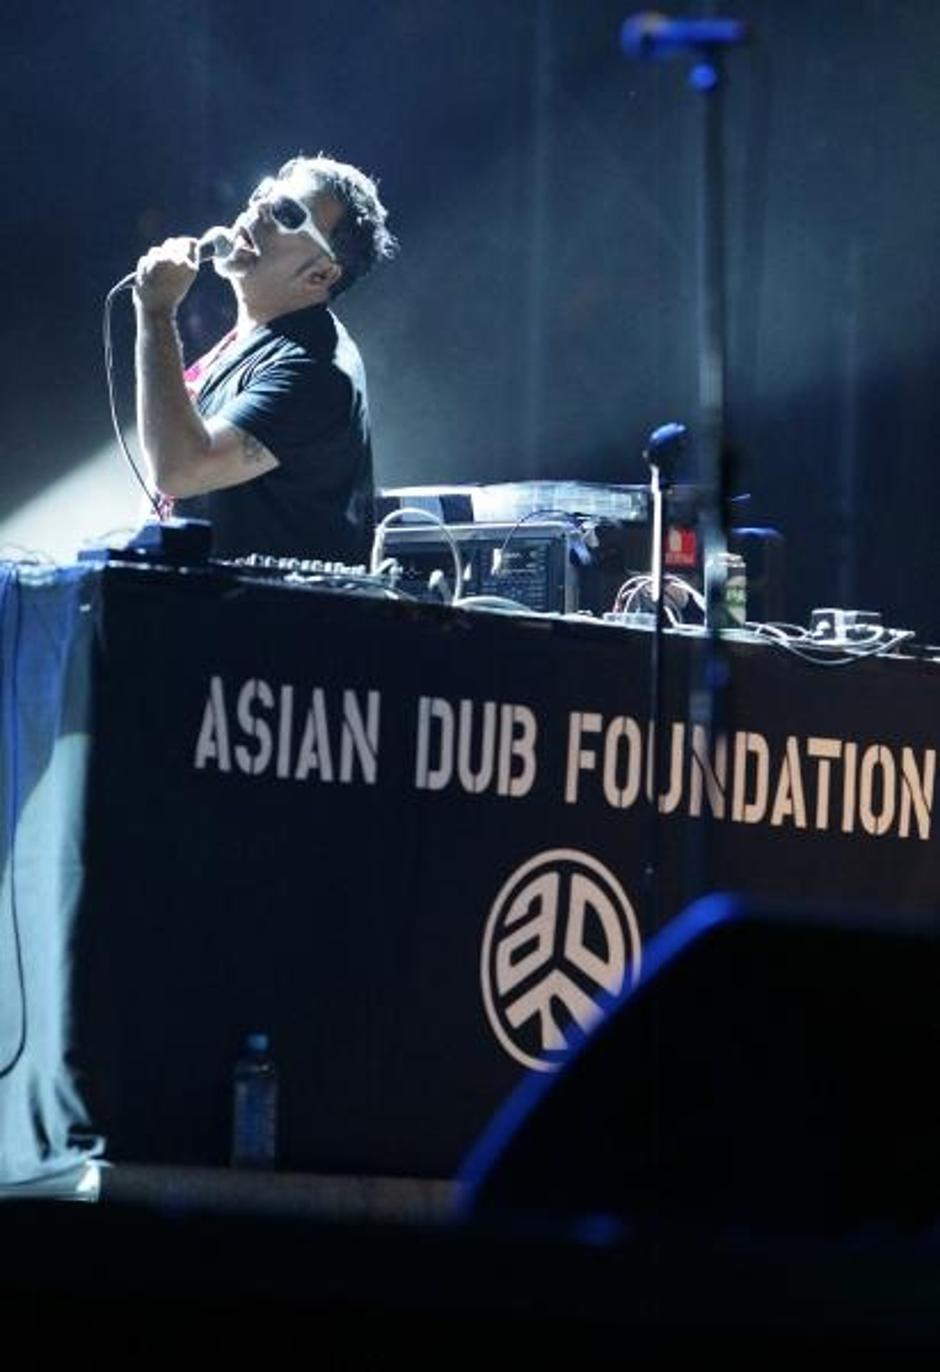 Asian Dub Fundation | Author: Marijan Susenj (PIXSELL)